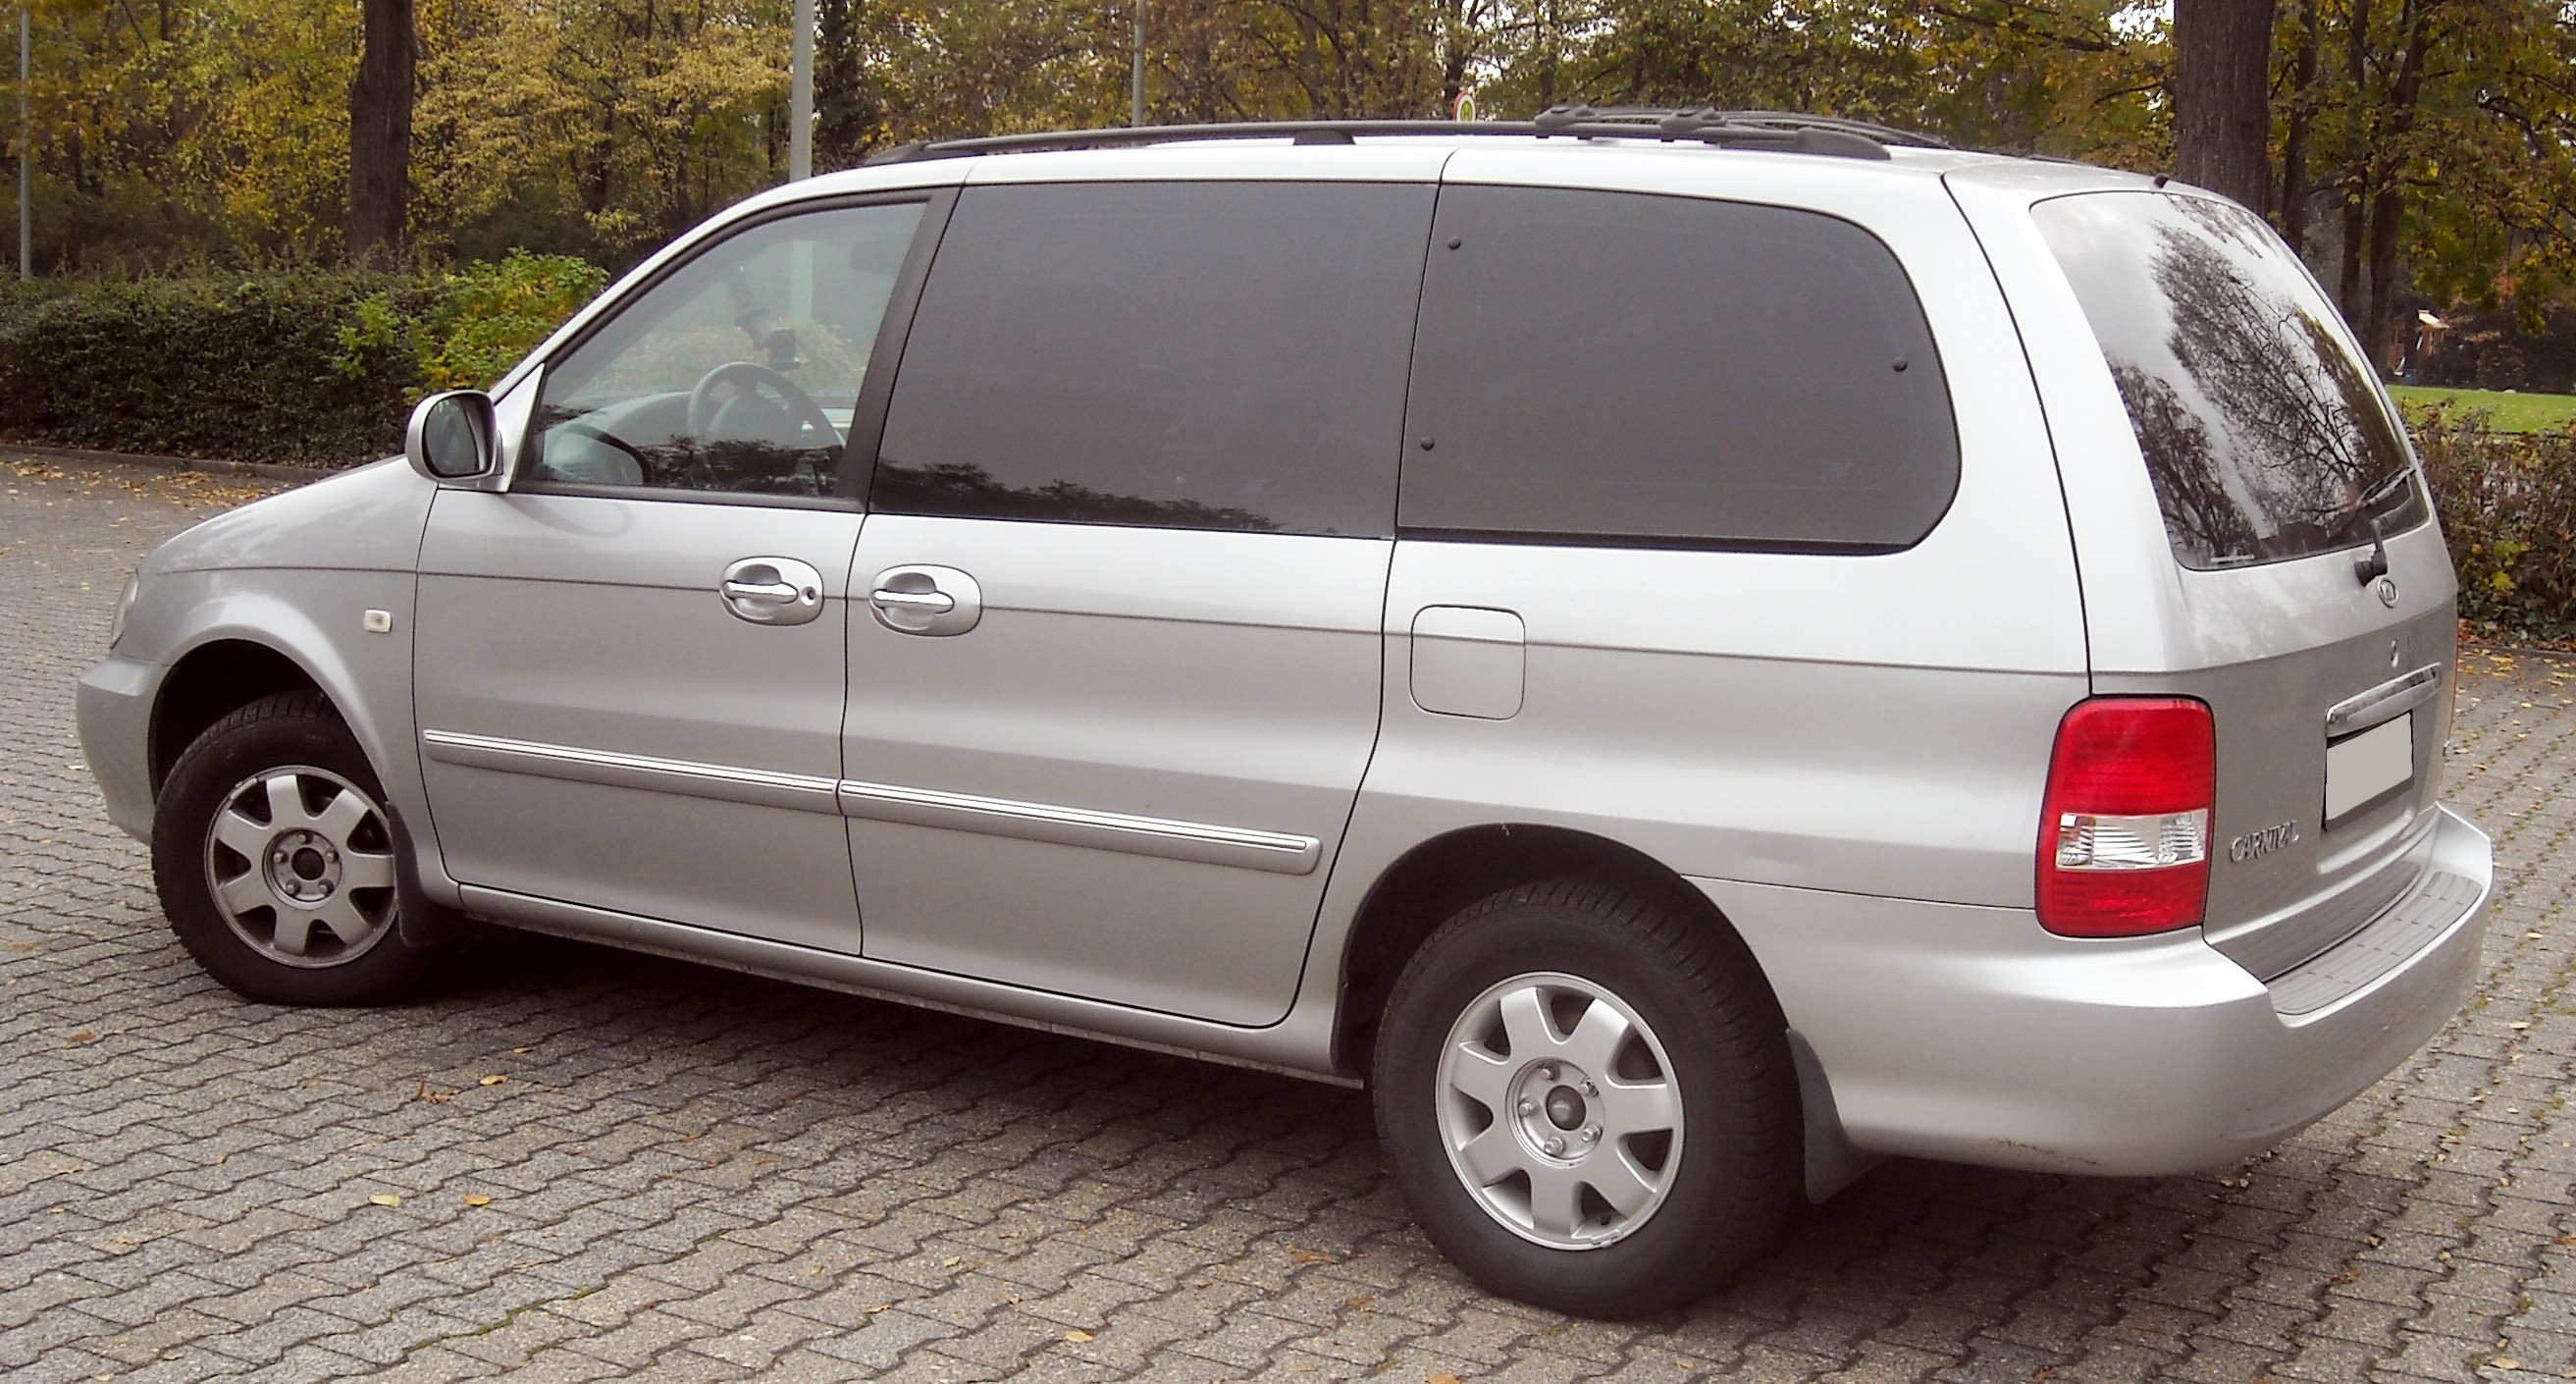 kia carnival 2001 review amazing pictures and images look at the car. Black Bedroom Furniture Sets. Home Design Ideas